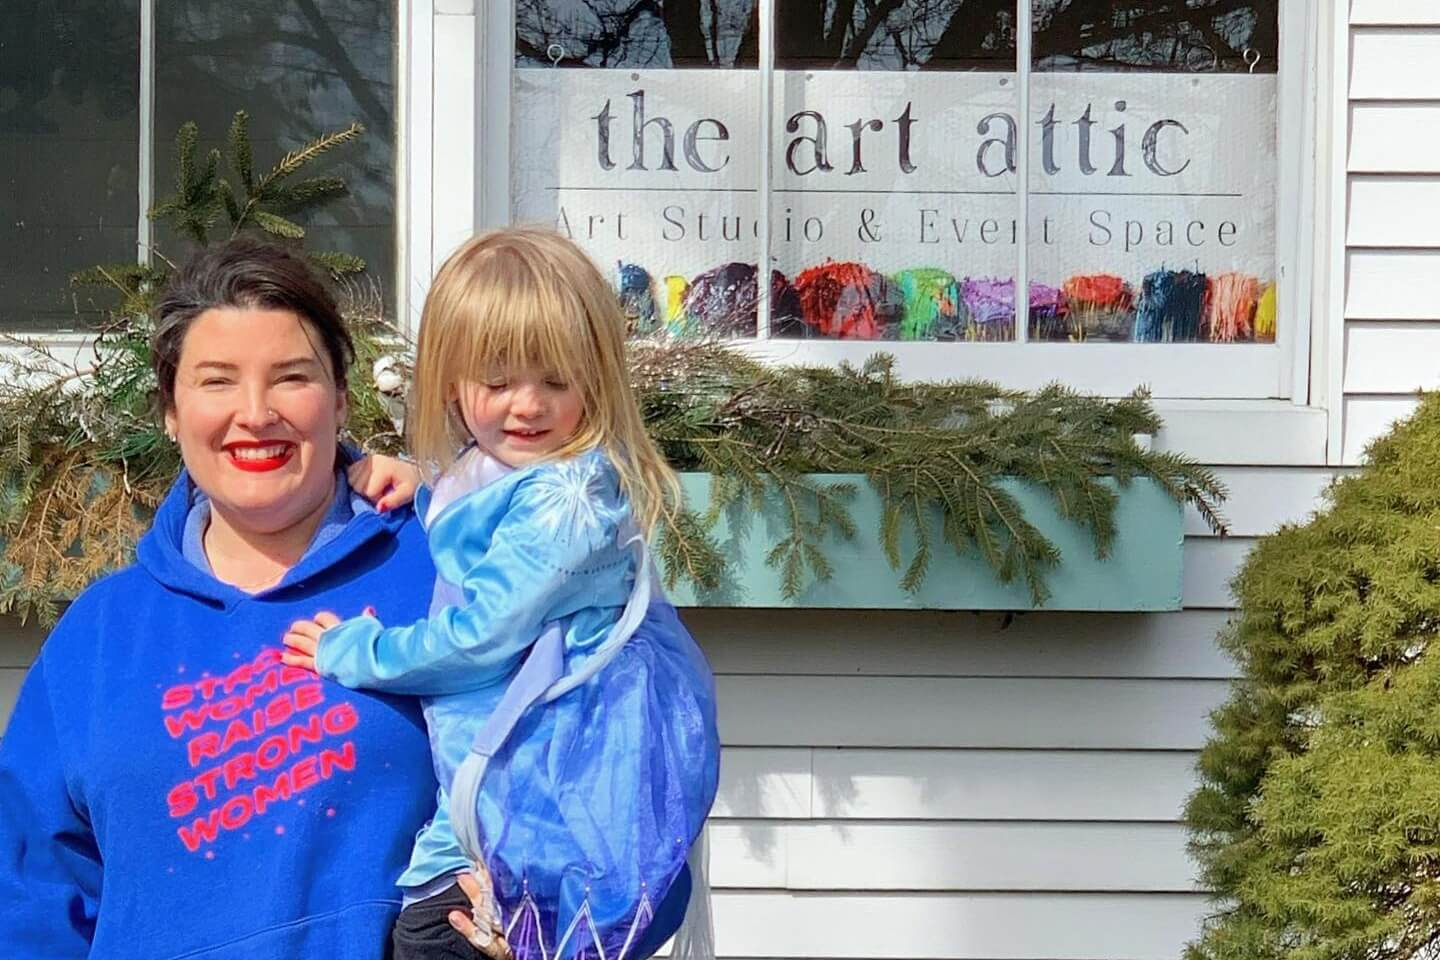 #MomLife With The Art Attic Co-Founder Bree